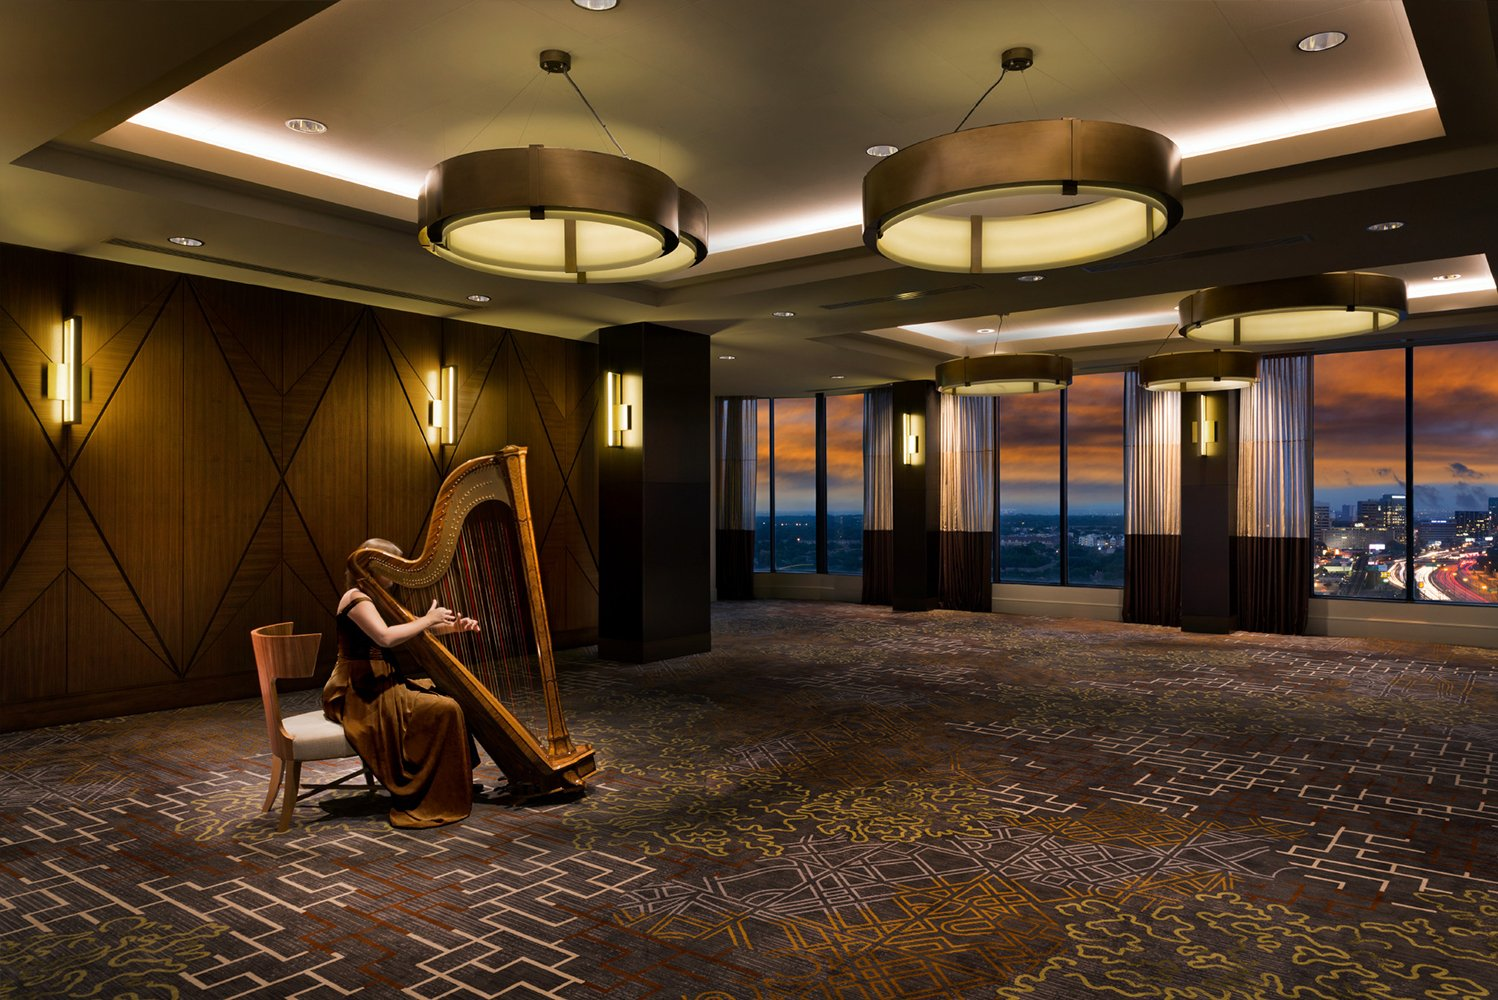 Upgrades were made to the 21st floor skyline ballroom, conference/board room, guestroom elevator lobbies and corridors.